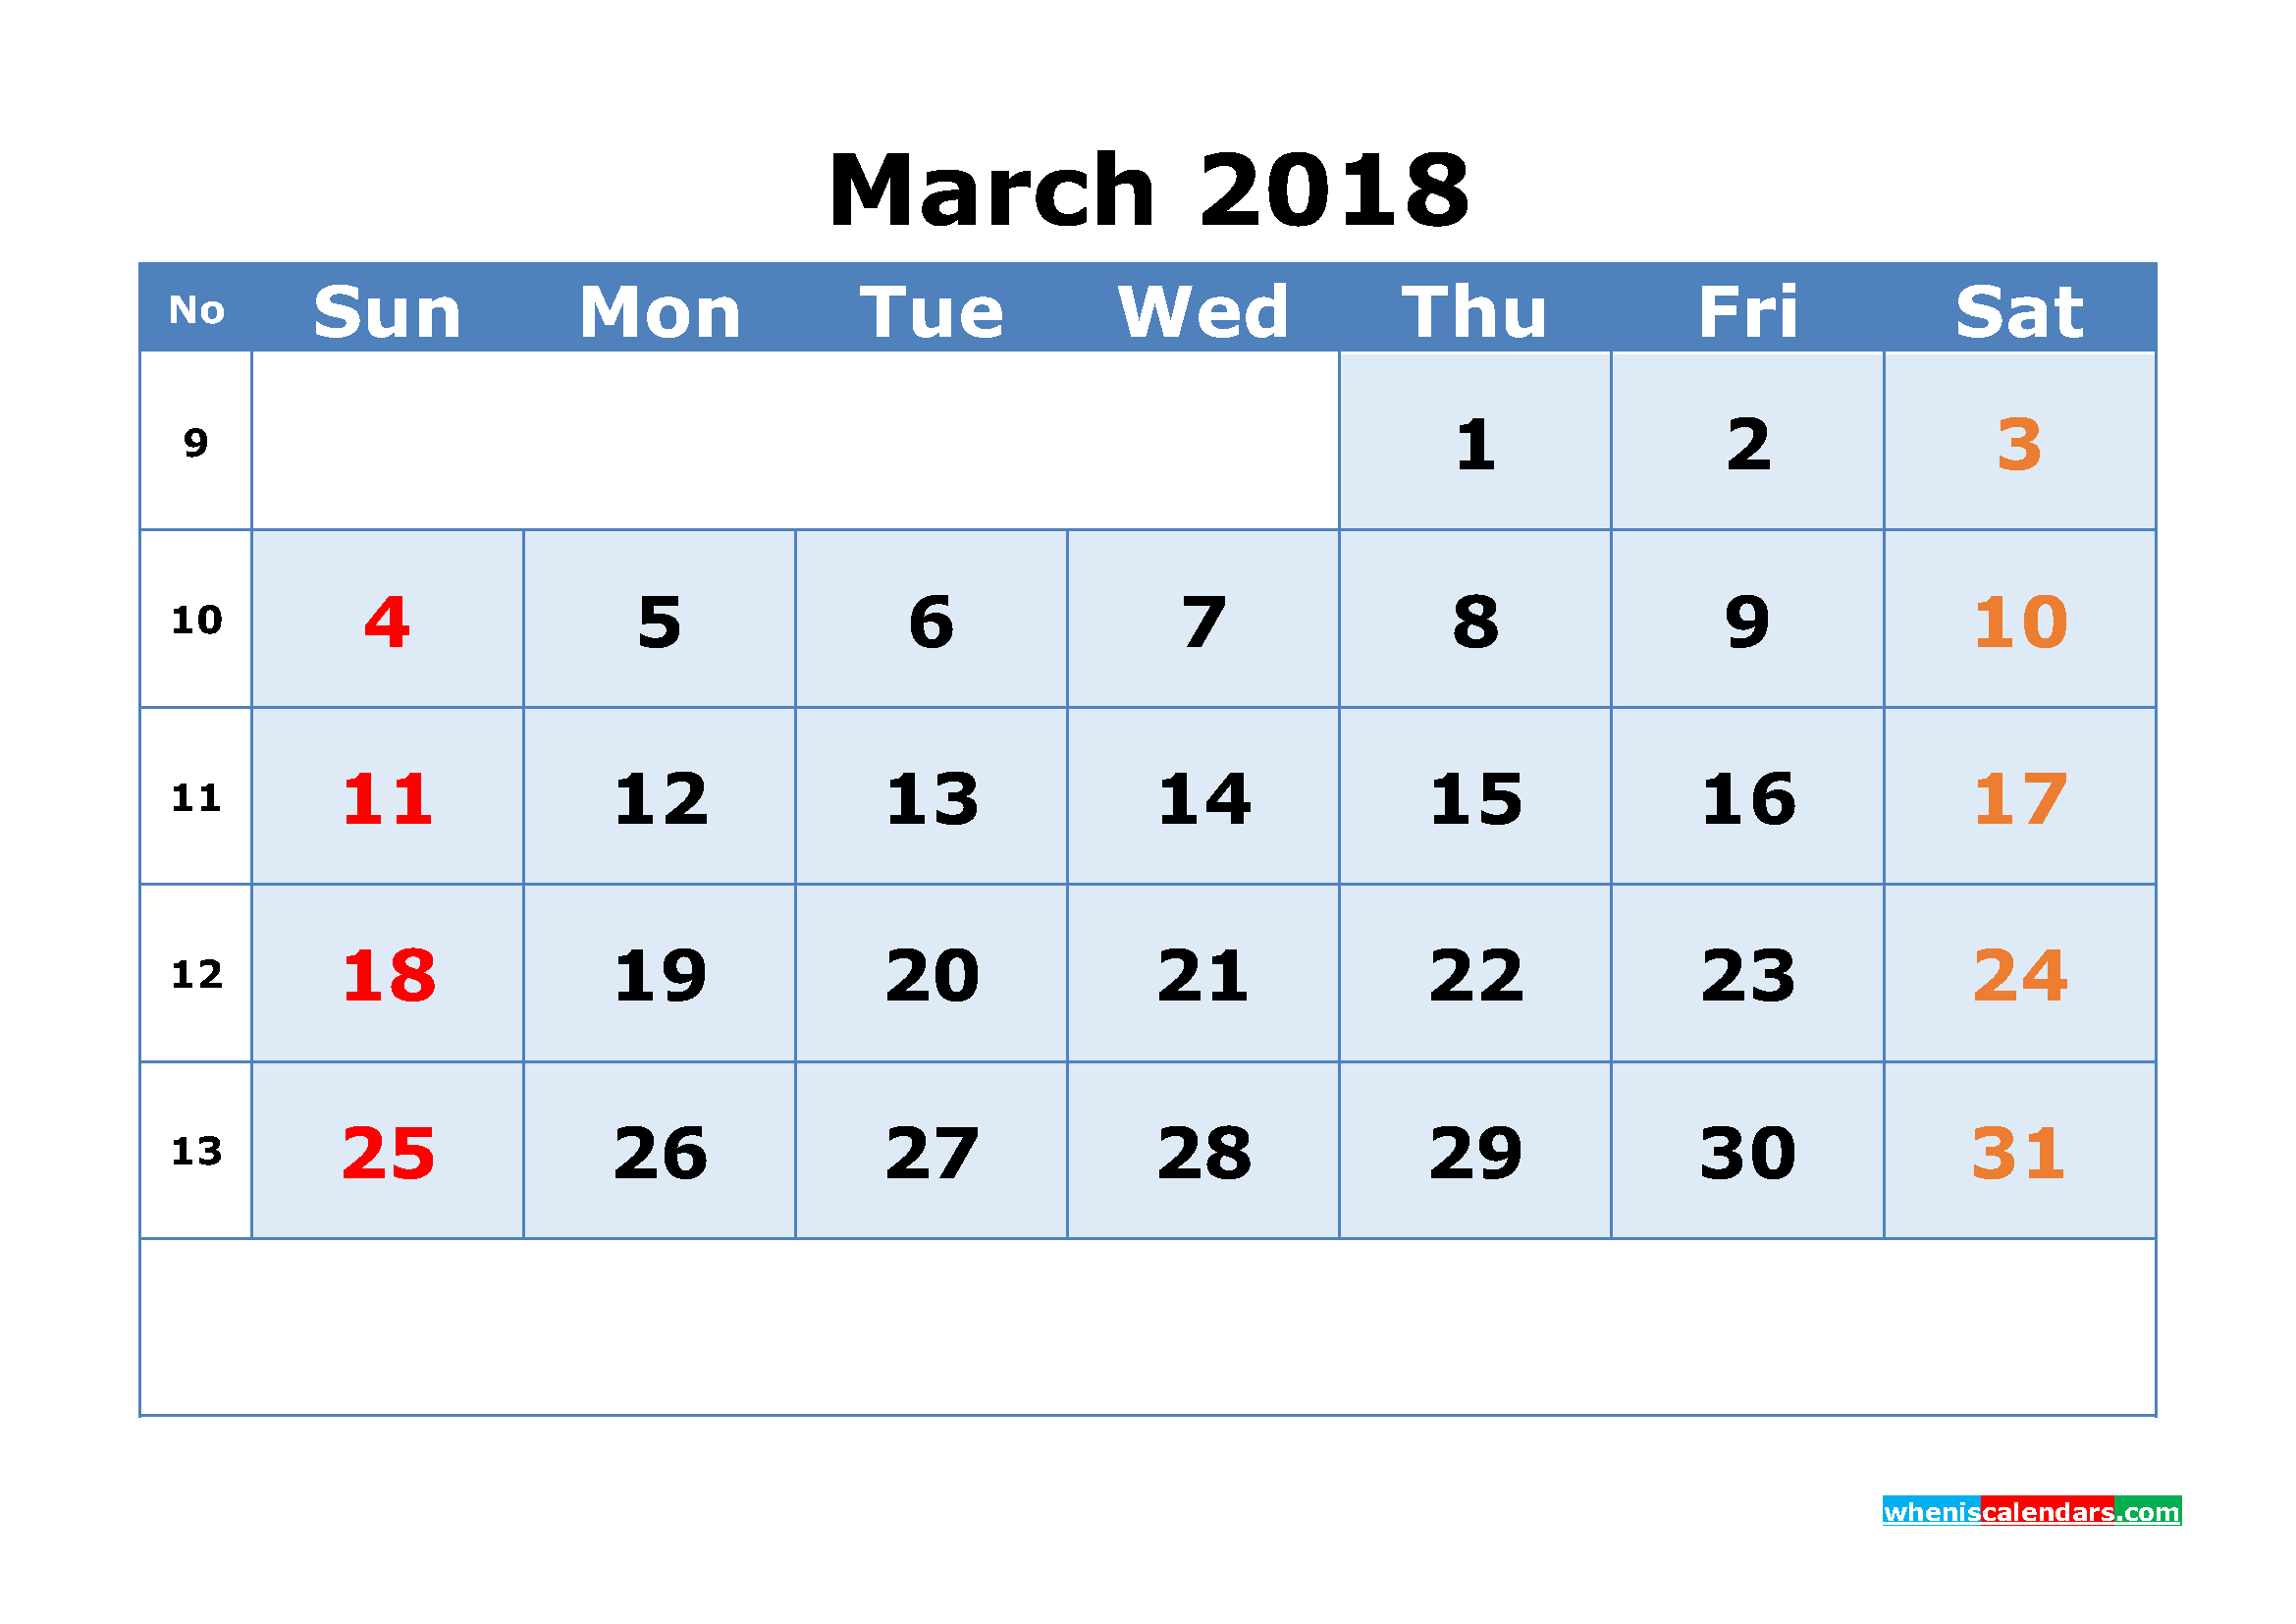 Printable Calendar March 2018 With Week Numbers As, Image inside Printable Calendar By Week